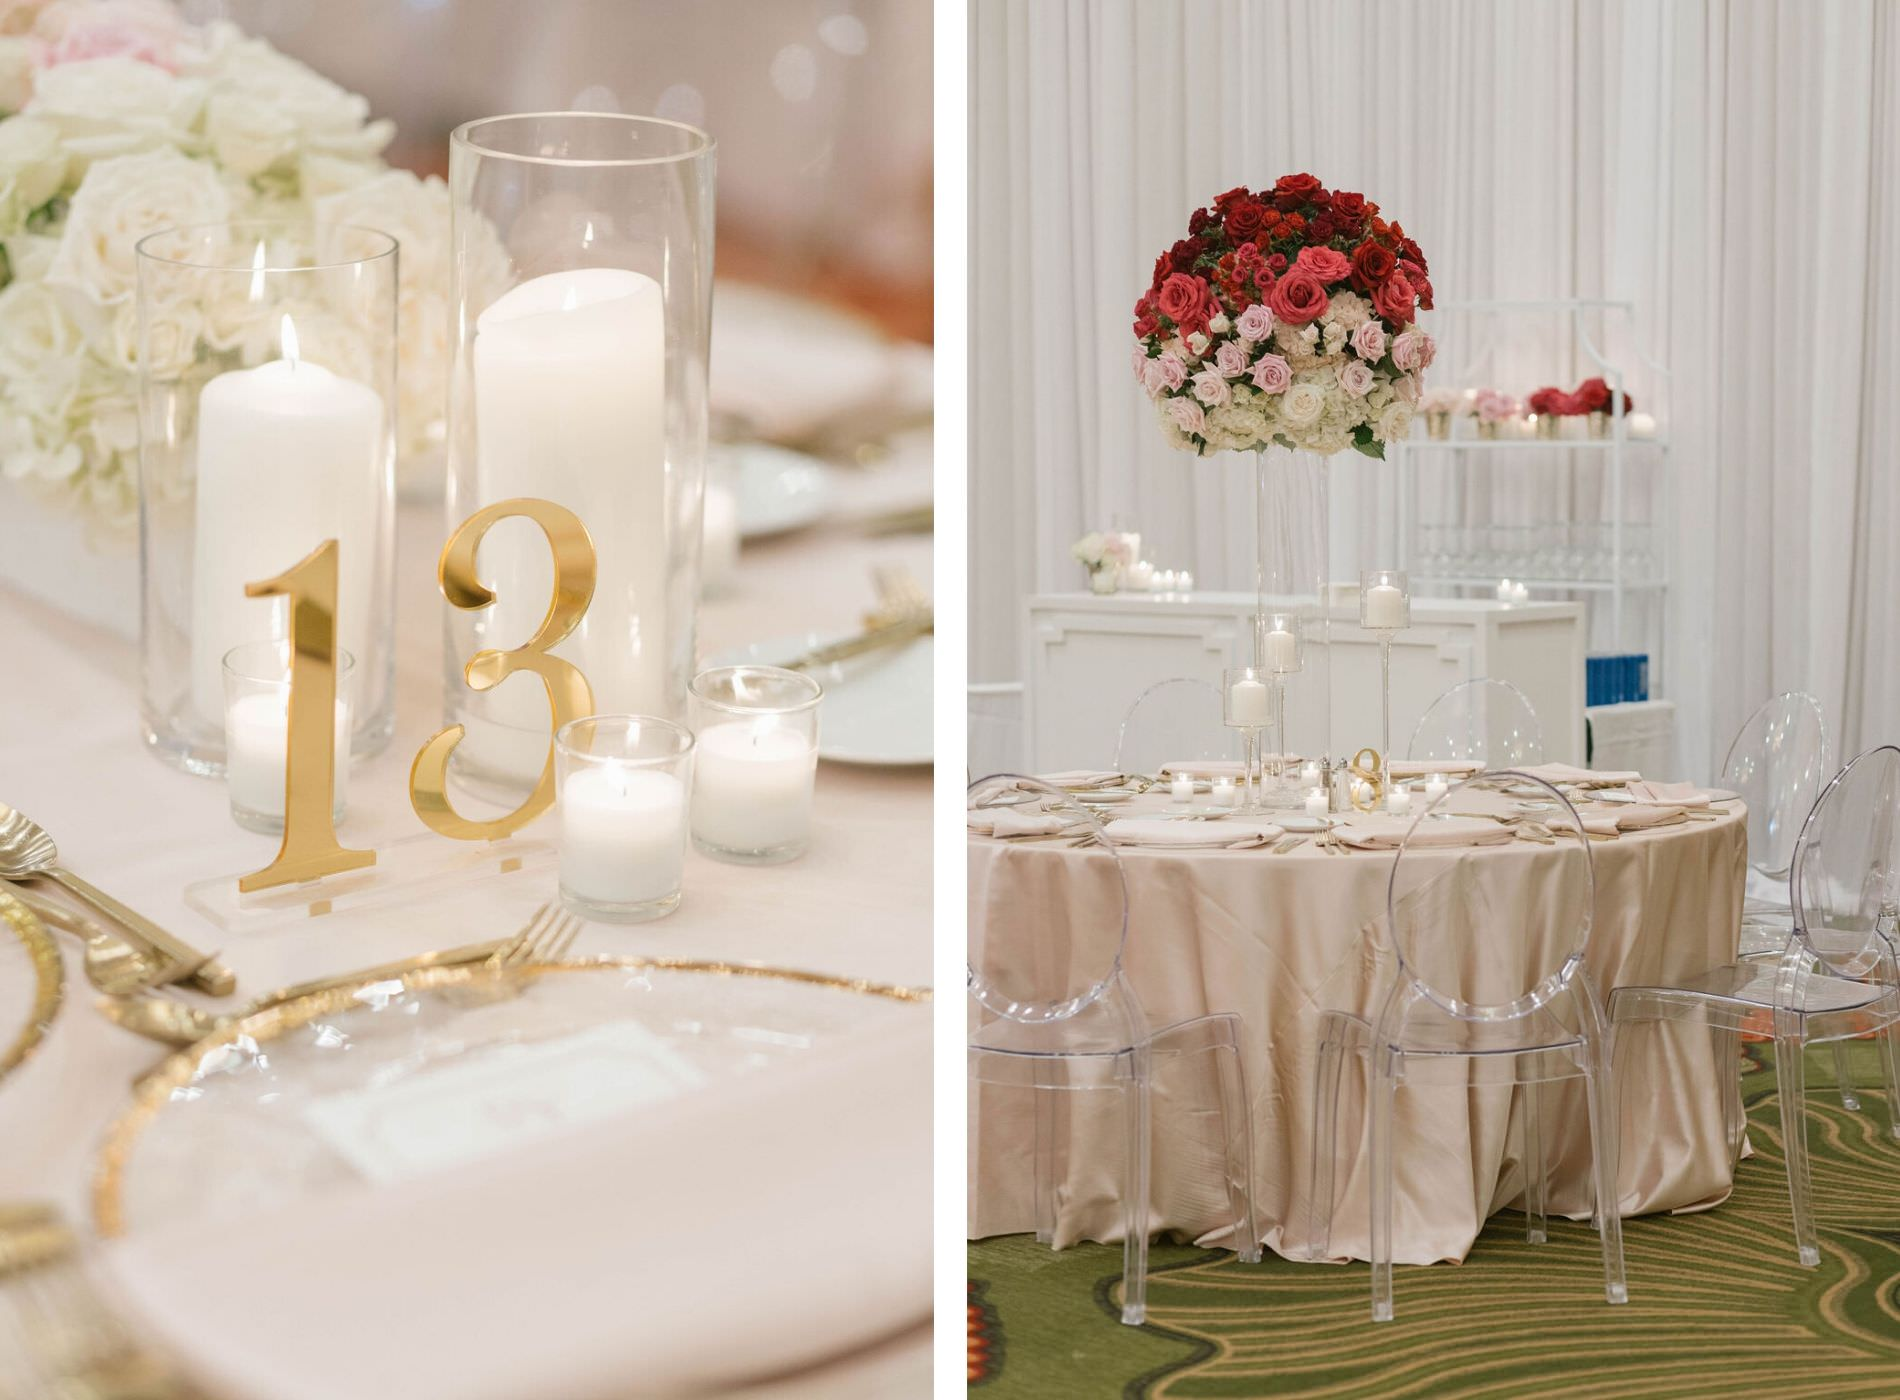 Romantic Ballroom Wedding Reception Decor Gold Acrylic Table Number, Gold Rimmer Chargers and Flatware   Round Table with Light Pink Silk Linens, Ghost Acrylic Chairs, Tall Red, Blush Pink and Ivory Roses Floral Centerpiece   Tampa Bay Wedding Planner Parties A'la Carte   St. Petersburg Wedding Florist Bruce Wayne Florals   Wedding Rentals A Chair Affair   Draping Gabro Event Services   Lines Over the Top Rental Linens   St. Petersburg Hotel Wedding Venue The Vinoy Renaissance